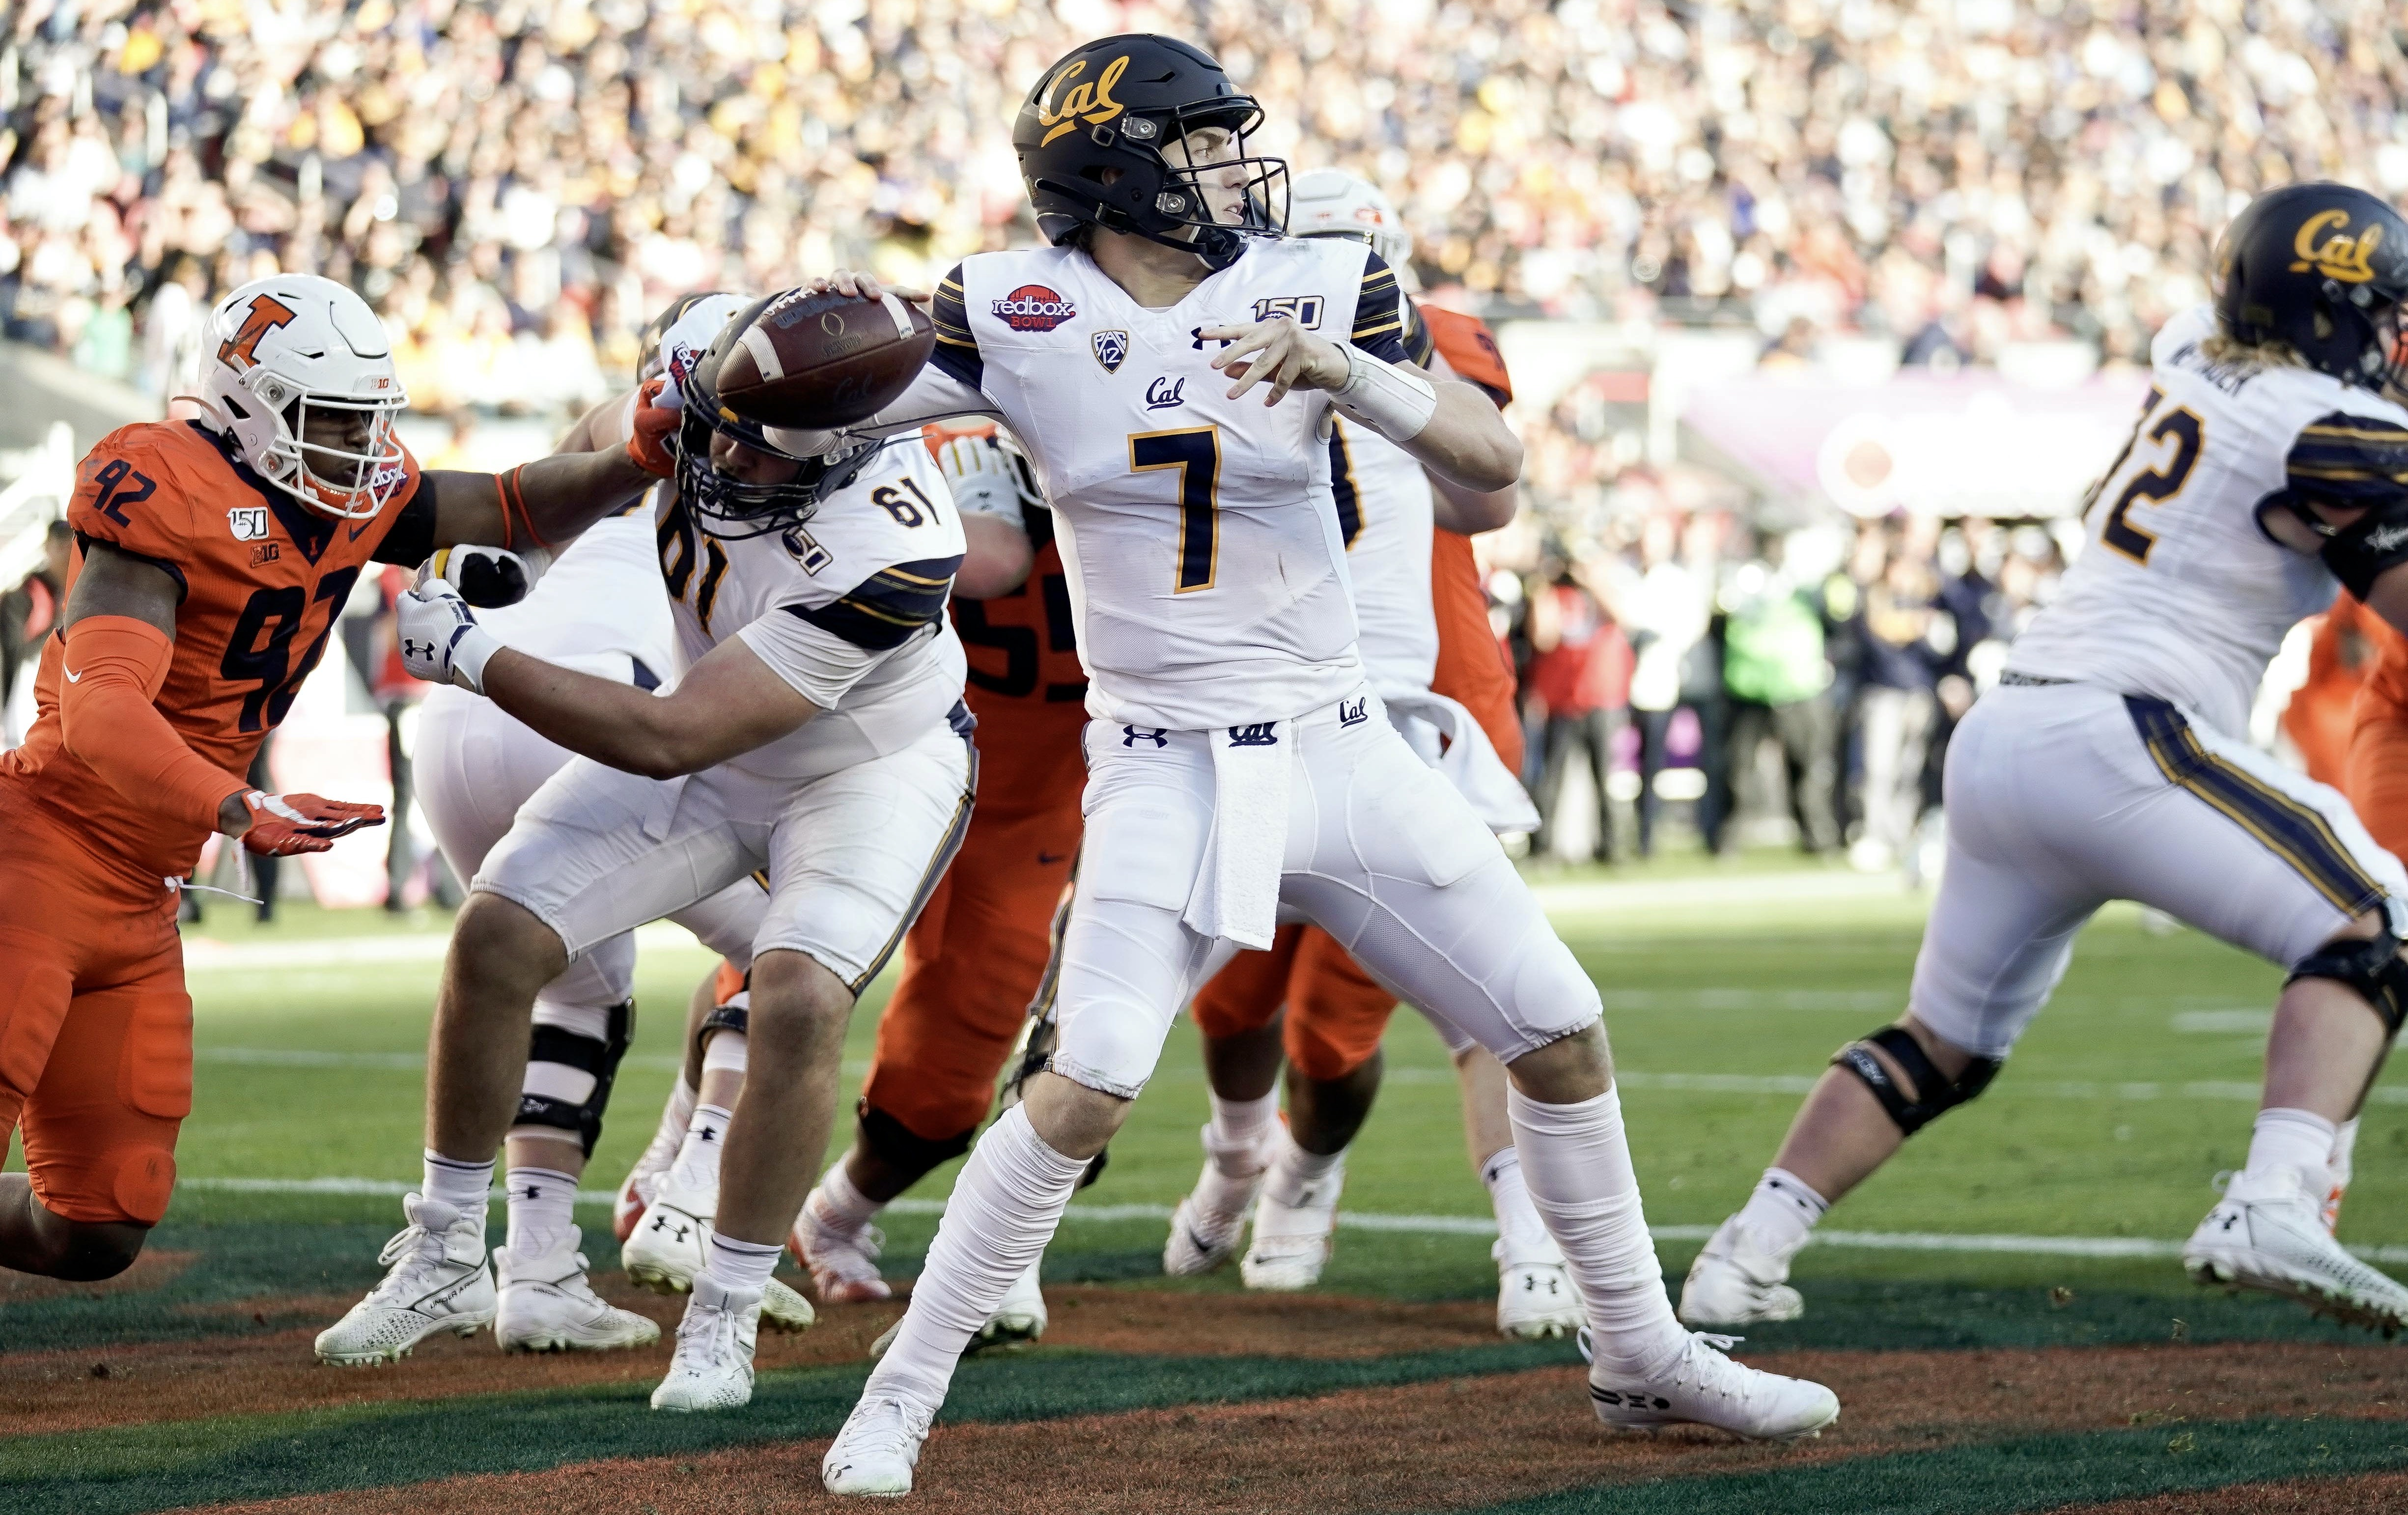 Cal Football: Full 2020 Schedule is Released